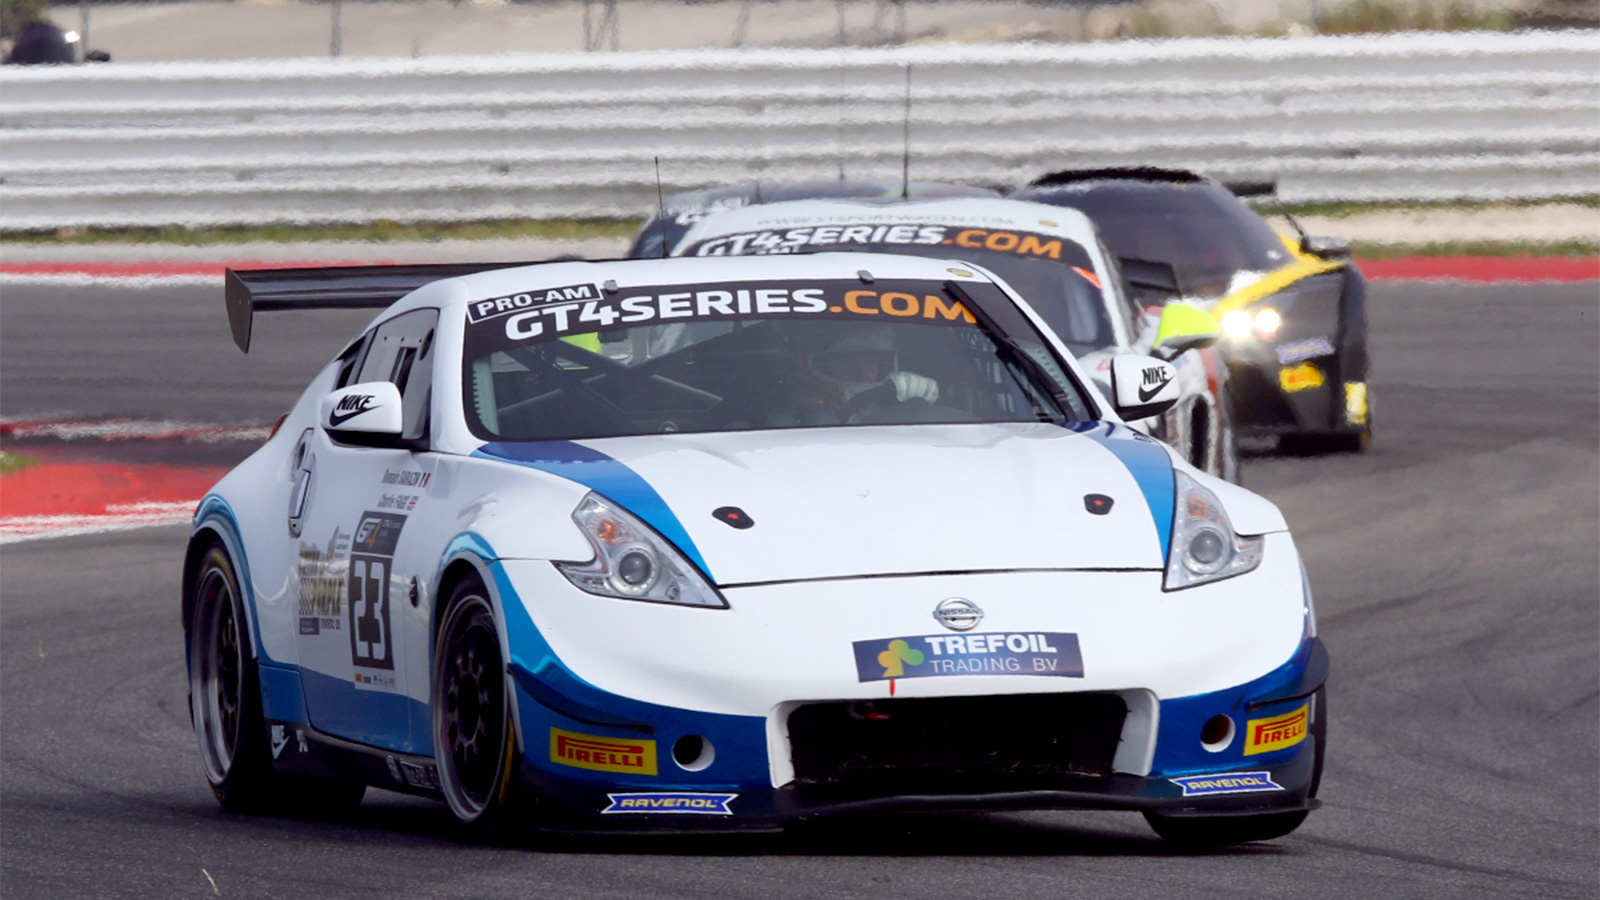 Great endurance racing debut for SWR at Misano in GT4 European Series.